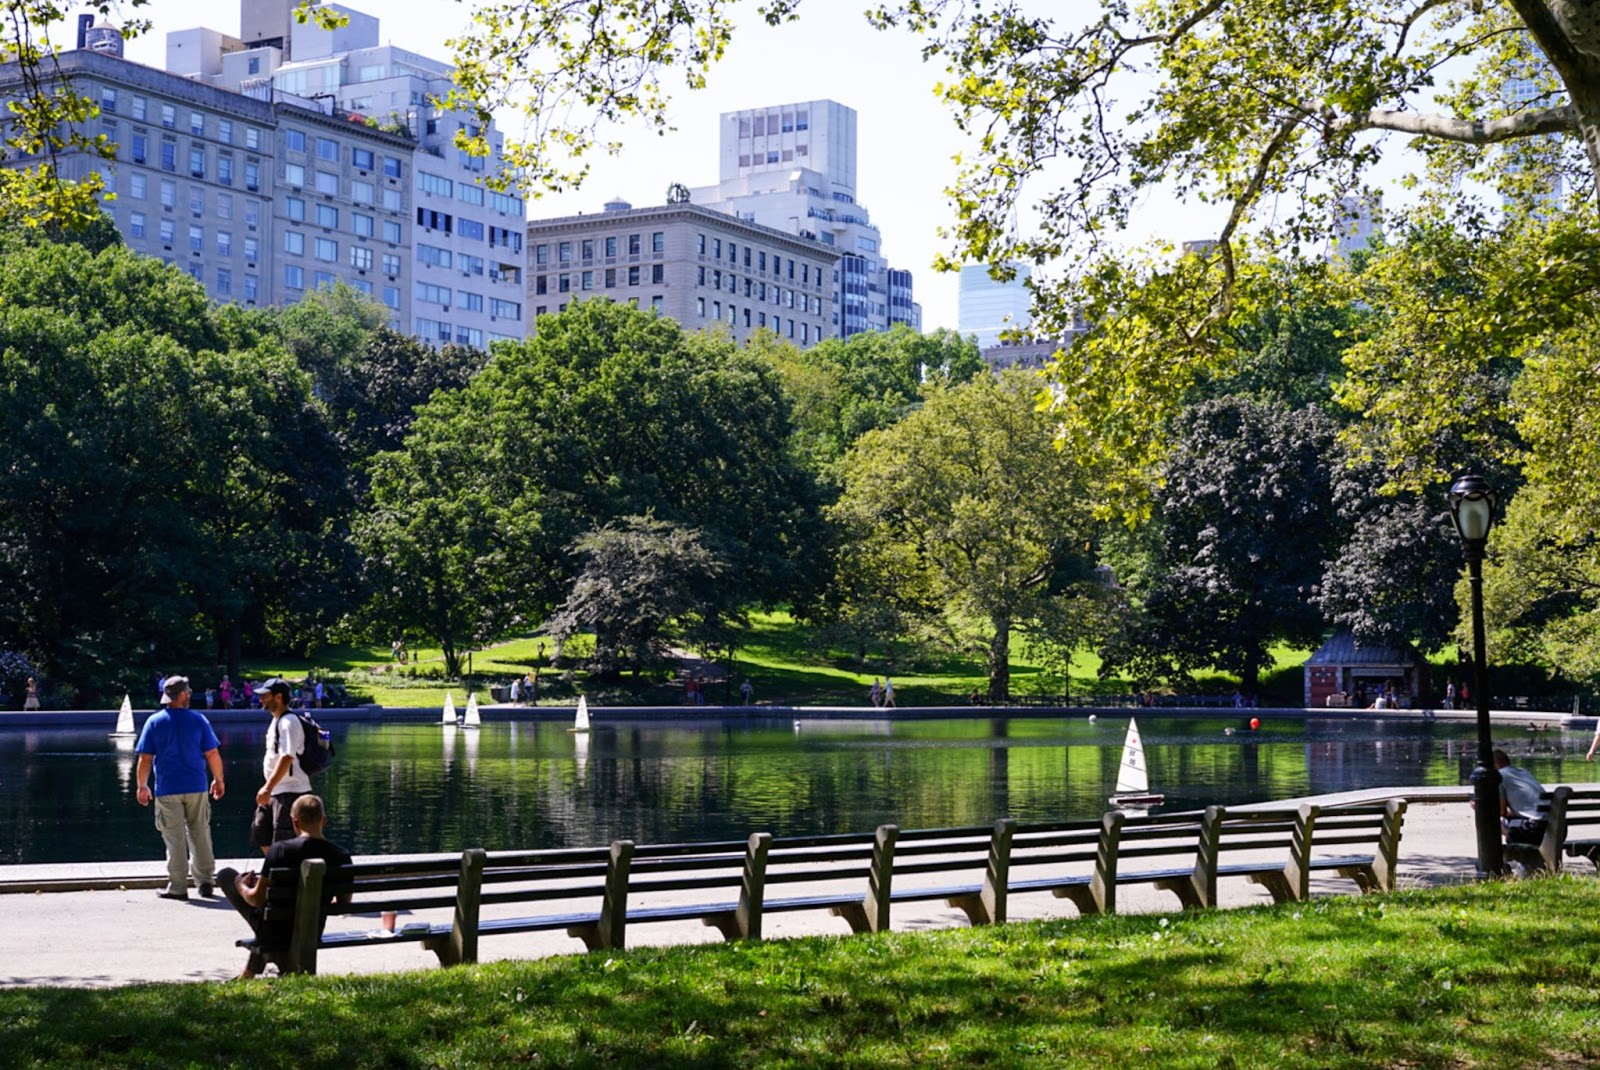 Utilizing open spaces for Recreation